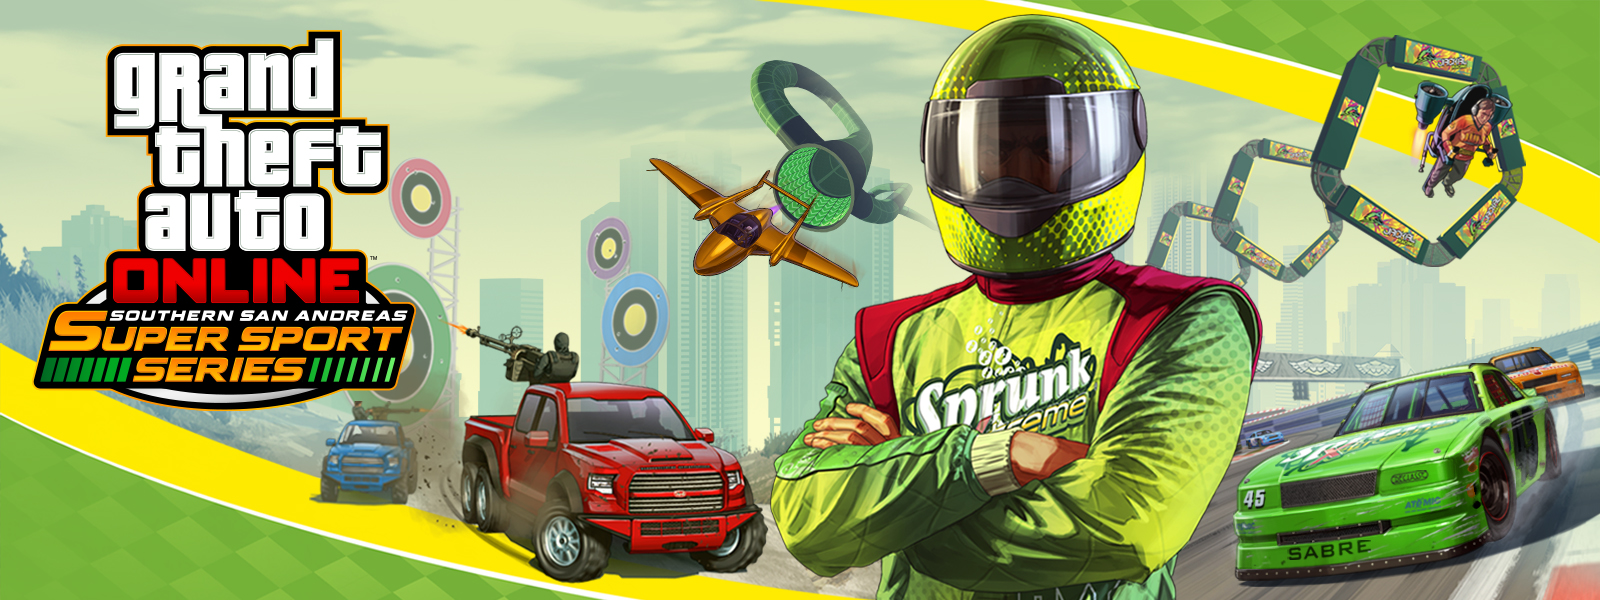 Grand Theft Auto Online Southern San Andreas Super Sports Series,Sprunk Racecar 車手雙臂交叉,站在背景各種不同競賽前方